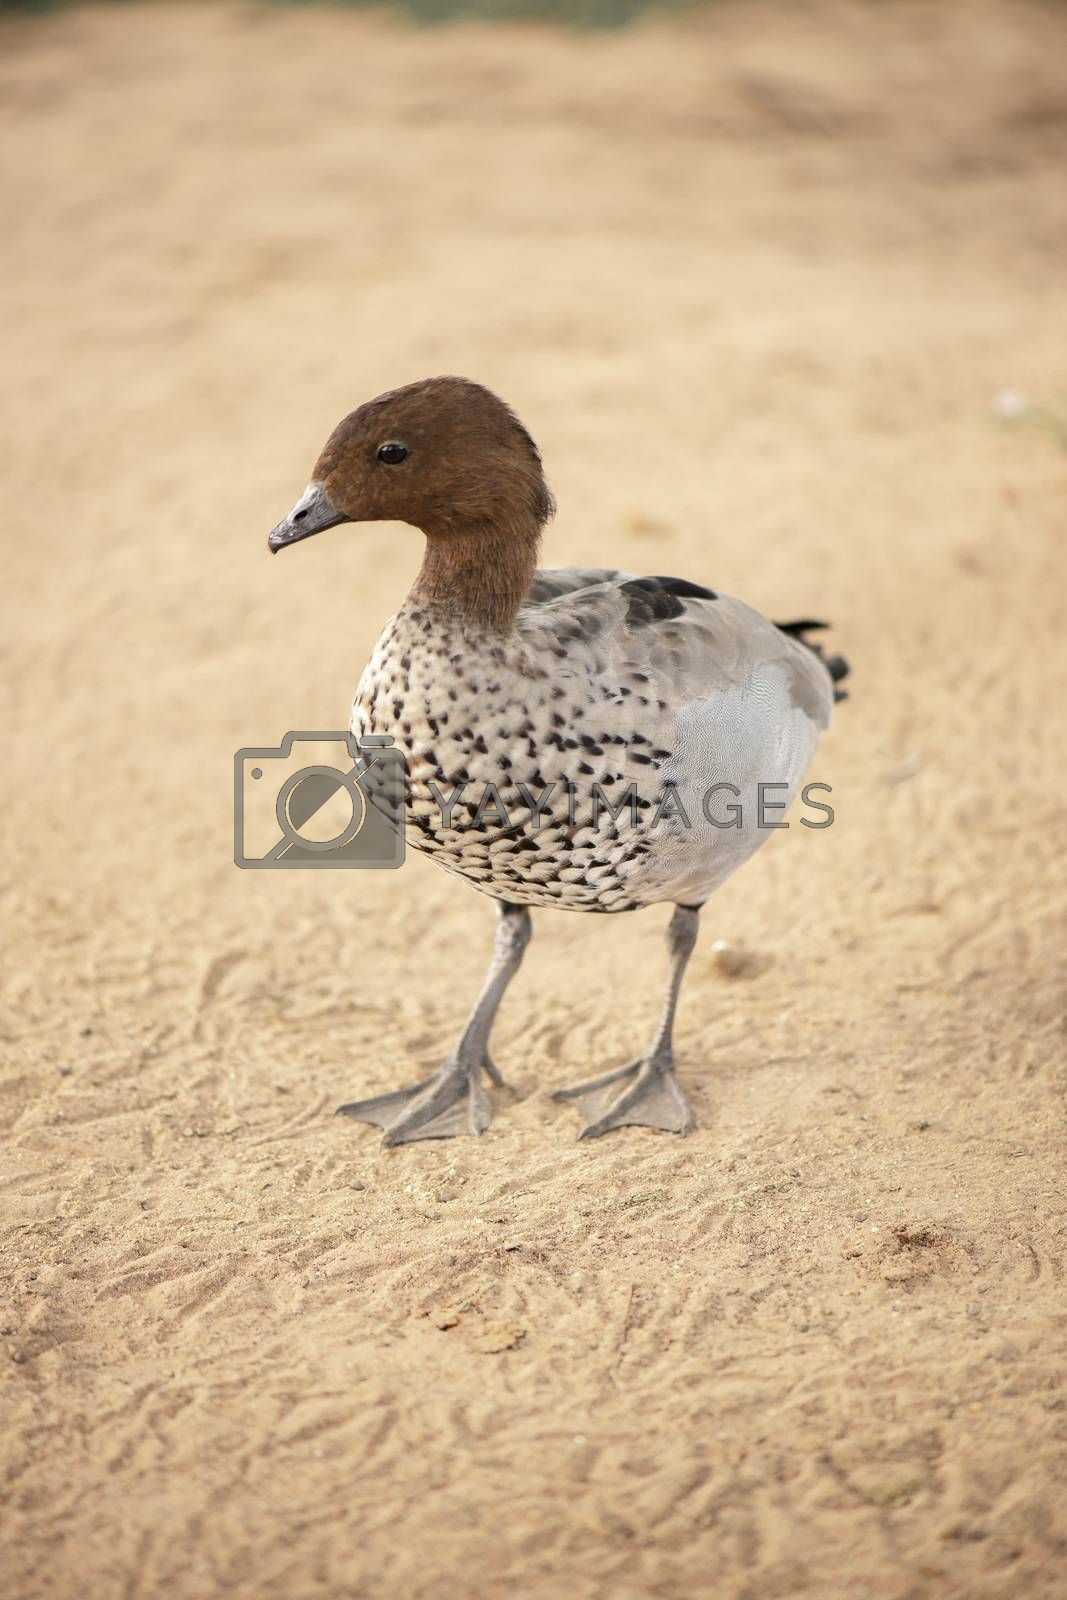 Small duck freely roaming on a farm during the day